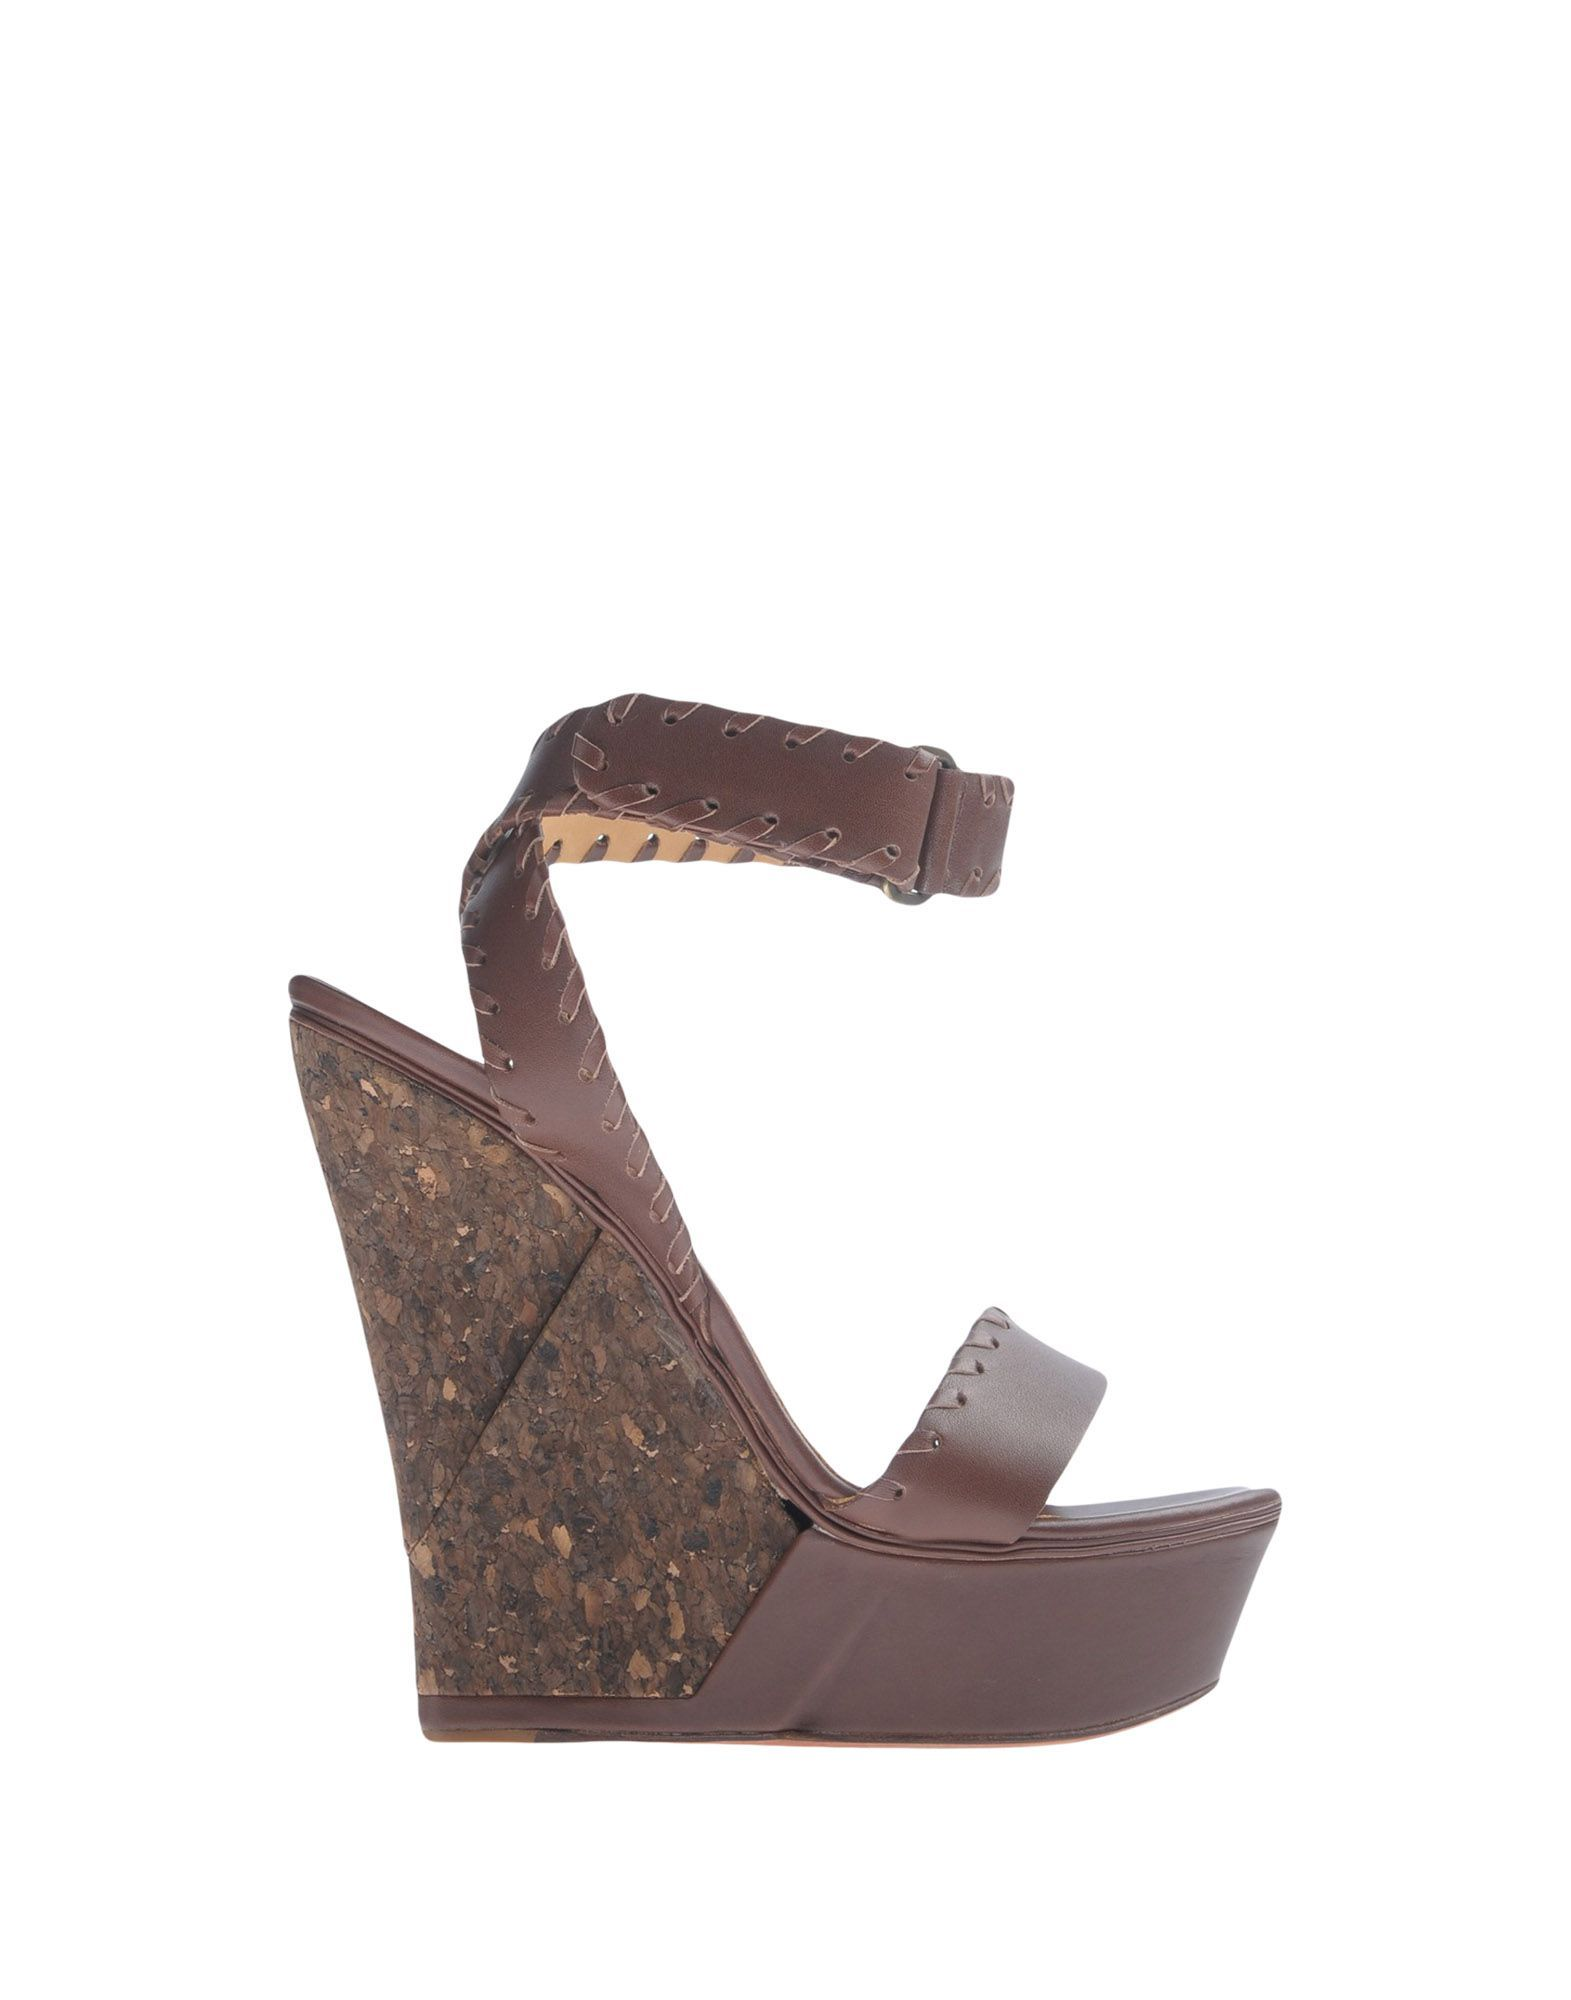 Lanvin Cocoa Leather Wedges